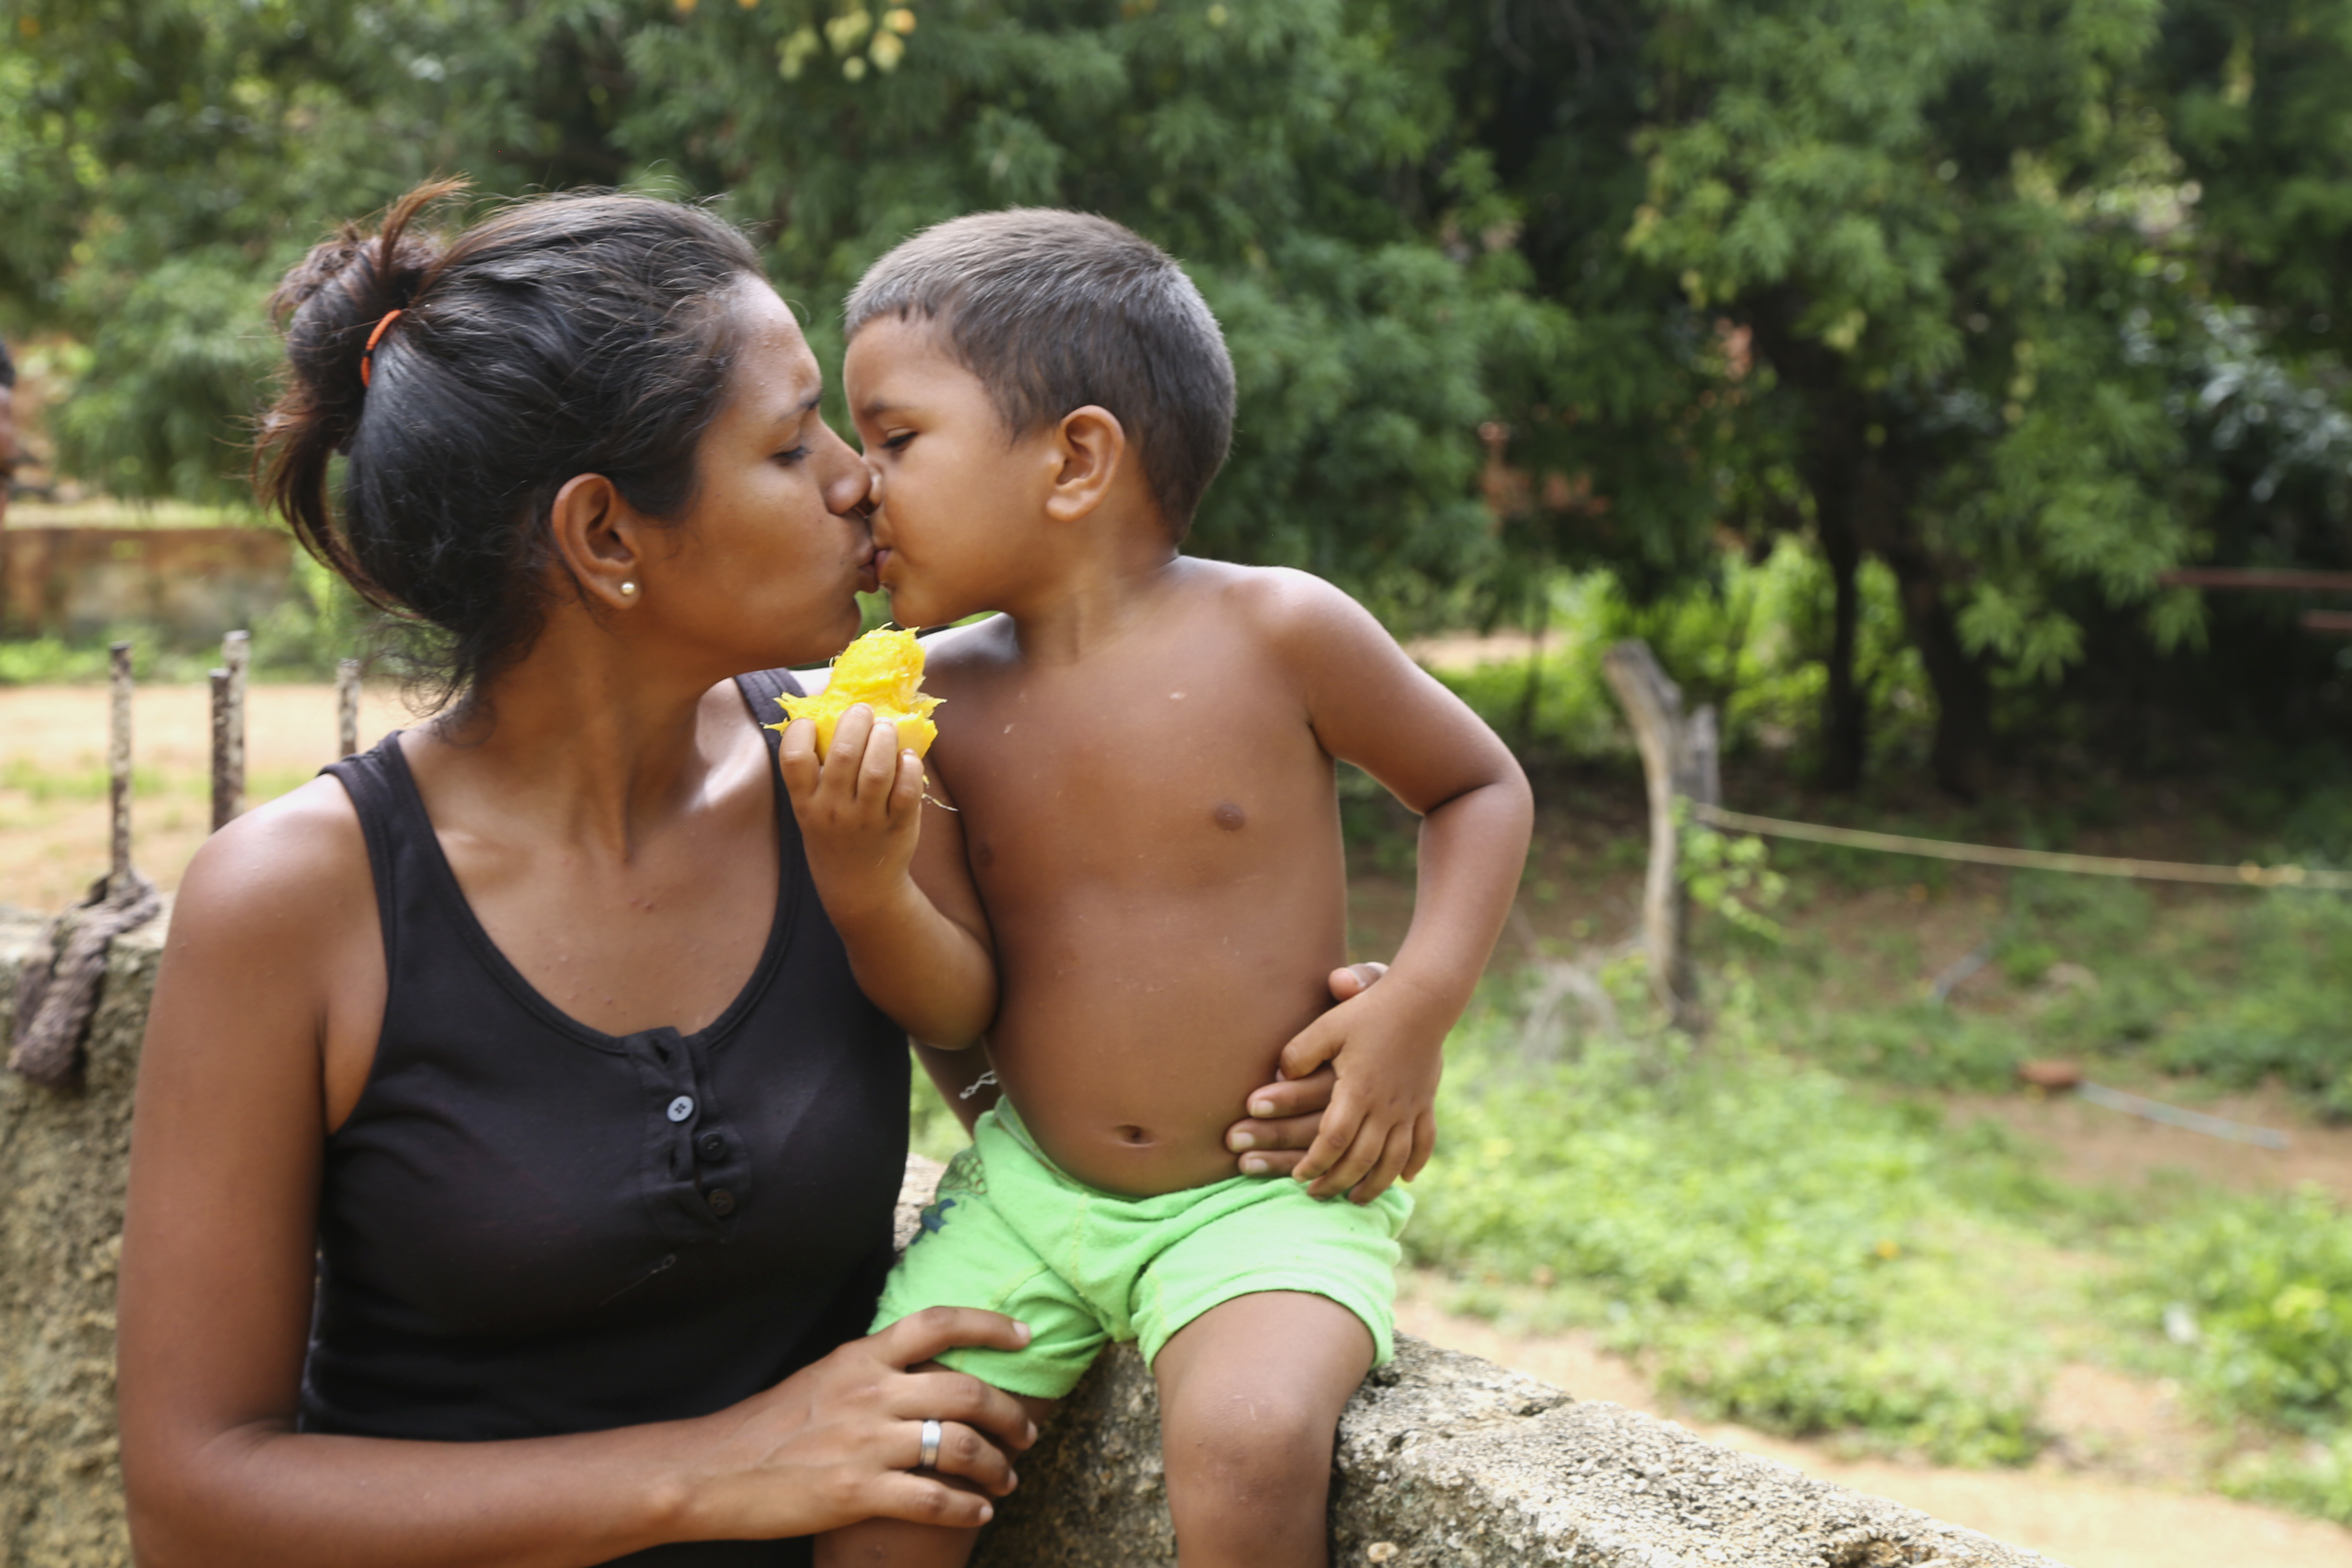 Yusmarelis Acu–a, 29, gets a kiss from her son Greivis, 3, outside their home in Venezuela.